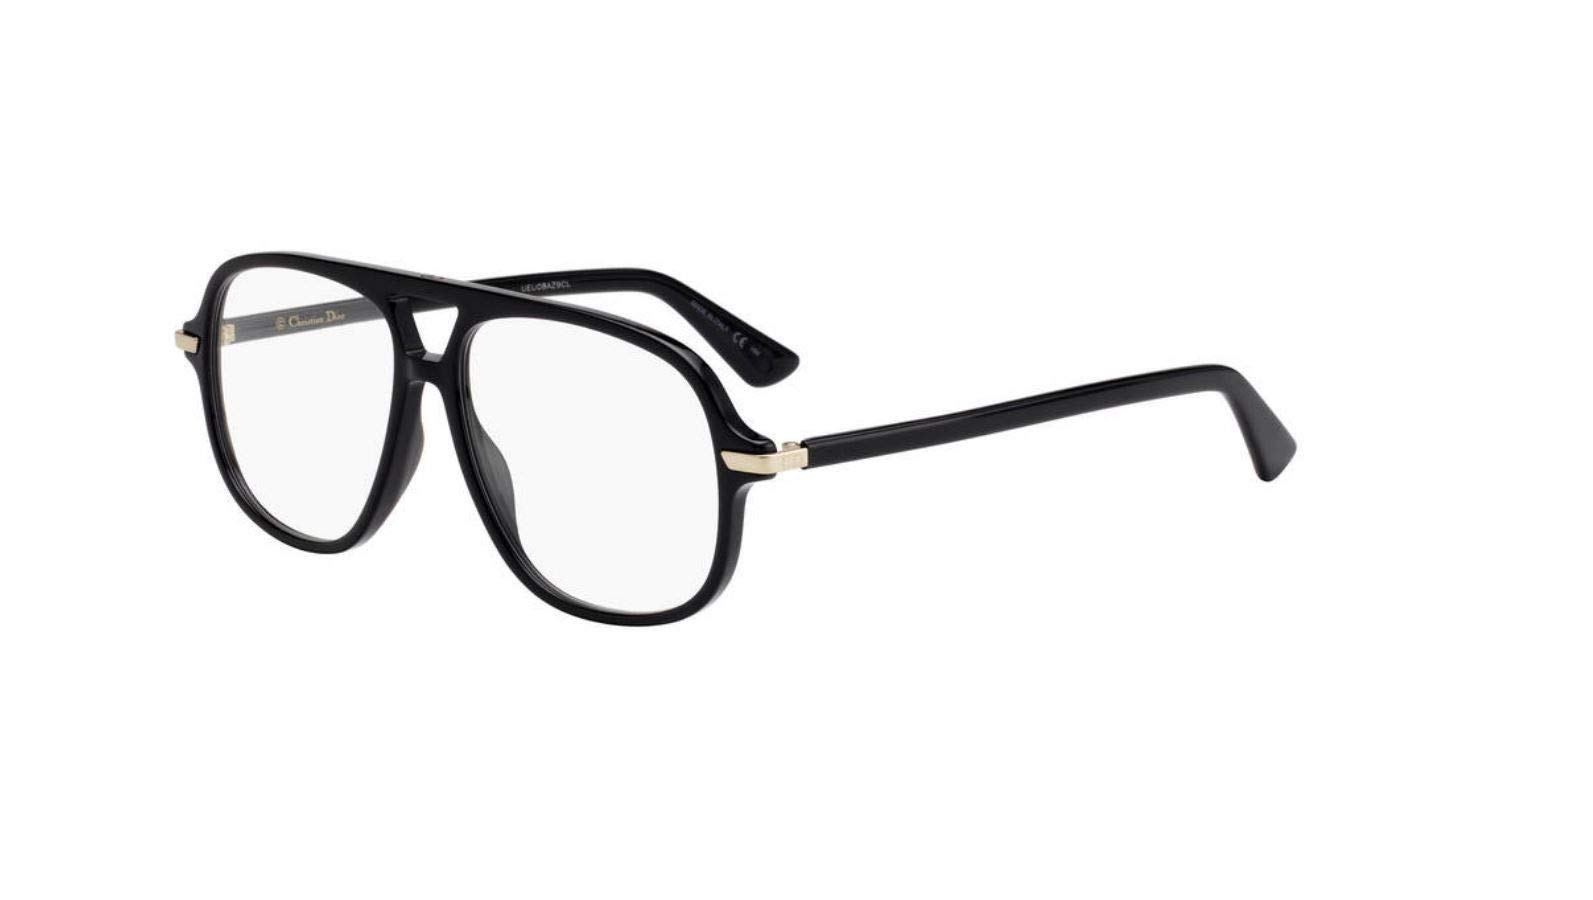 Authentic Christian Dior Essence 16 0807 Black Eyeglasses by Dior